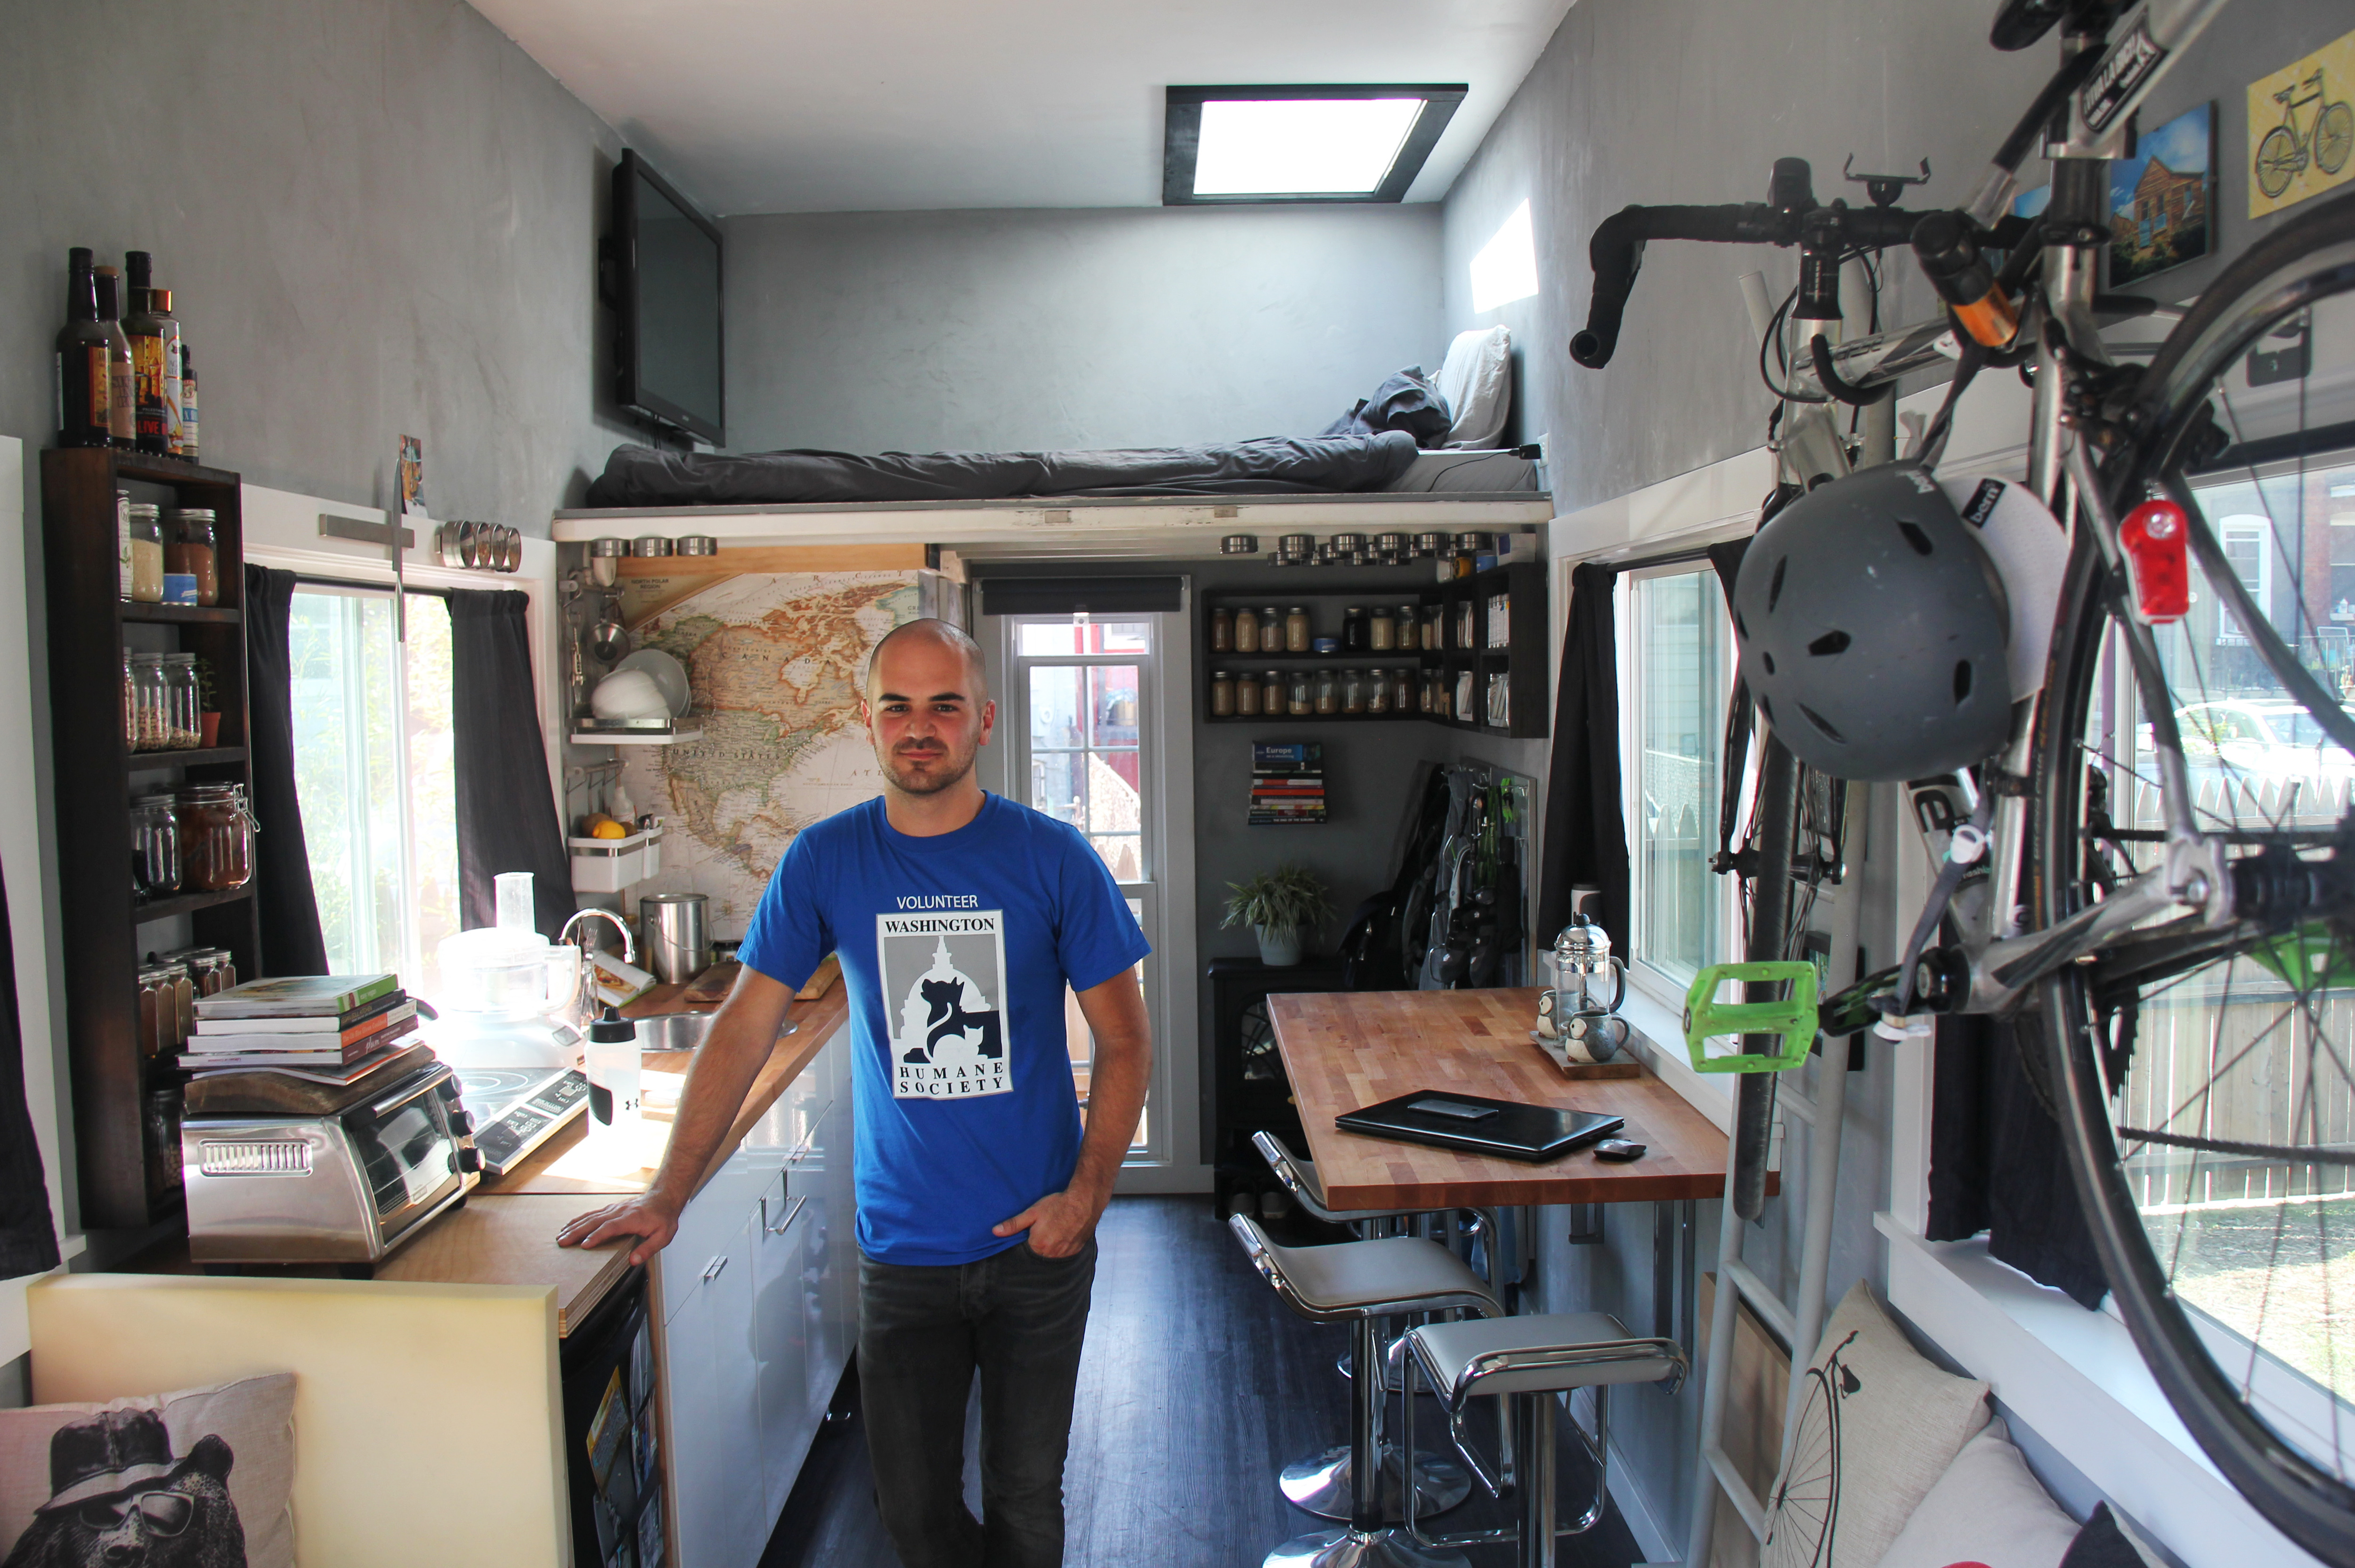 Living Small In The City: With More Singles, Micro-Housing Gets Big